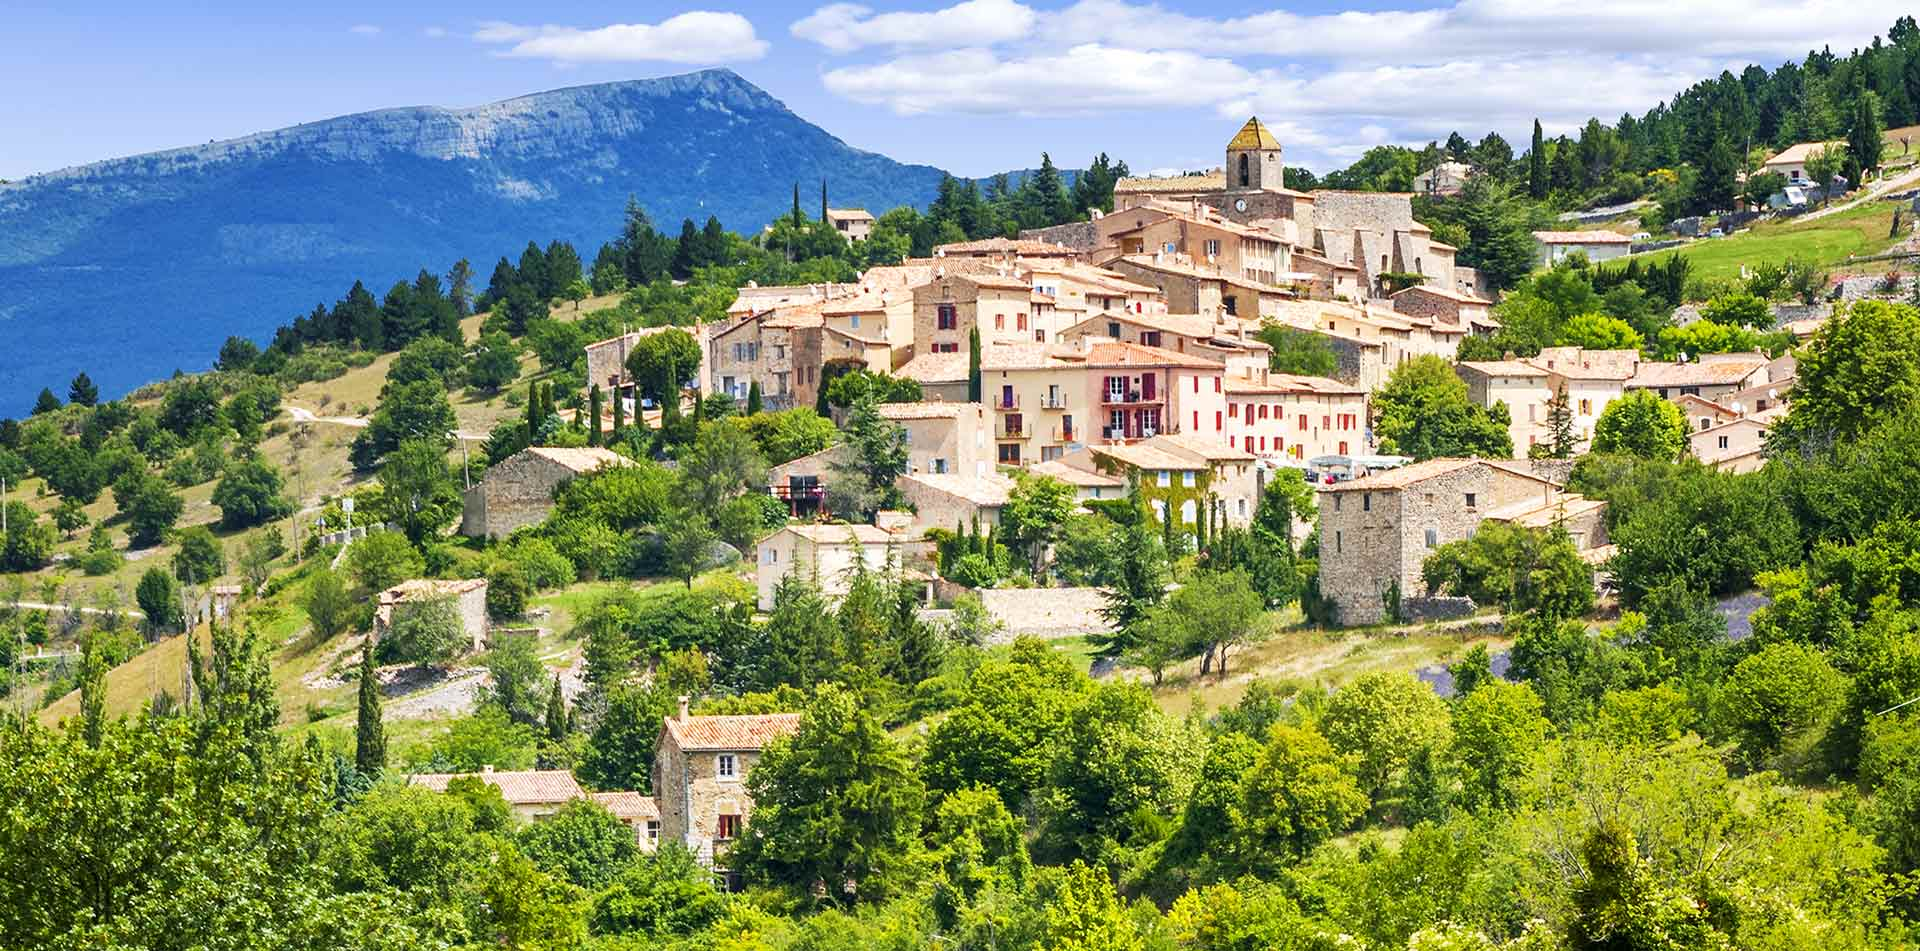 Europe France Provence beautiful hillside town with mountains in background - luxury vacation destinations